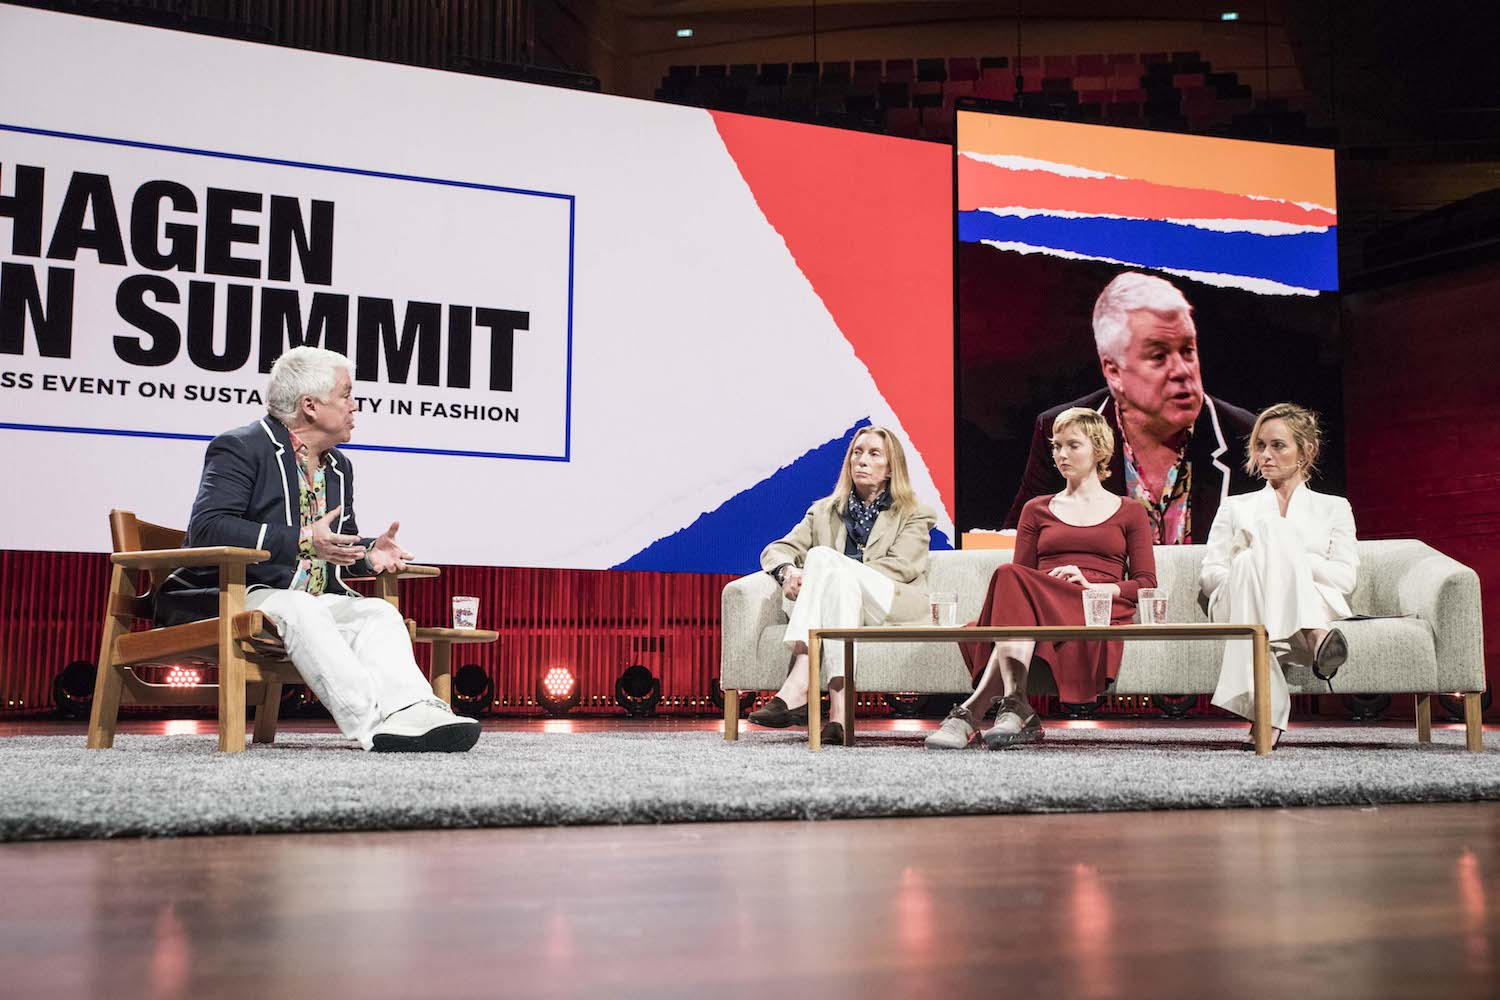 Tim Blanks in a panel discussion at the Copenhagen Fashion Summit with Tonne Goodman, Lily Cole and Amber Valletta on how brands and media houses should go about communicating sustainability